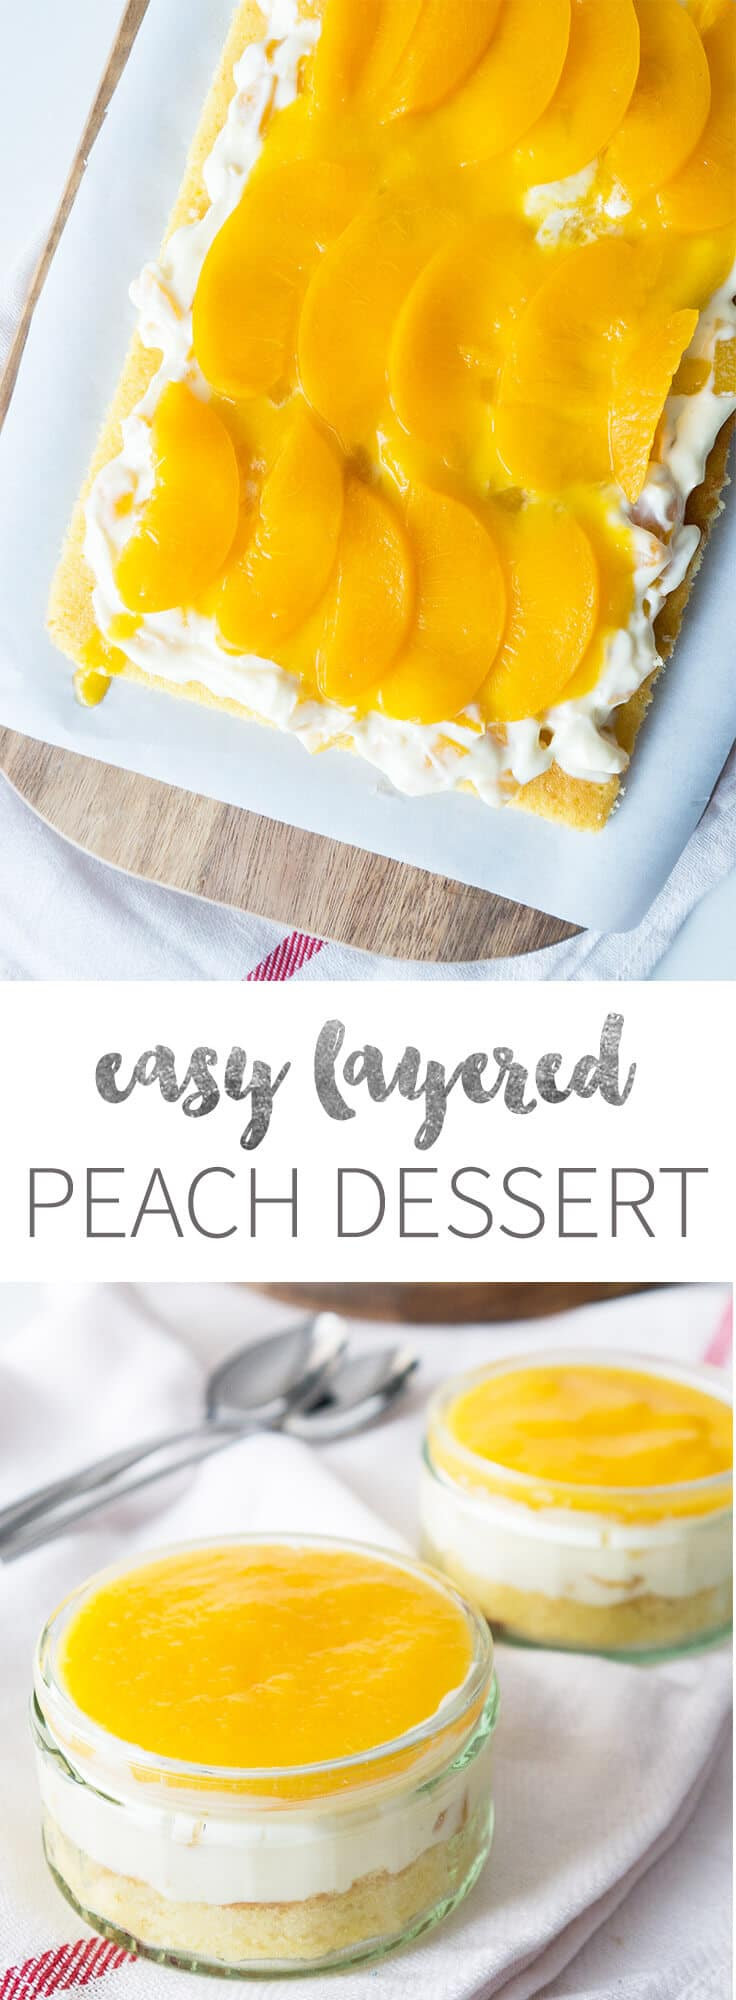 This easy canned peach dessert has 3 layers and is refreshing and ...